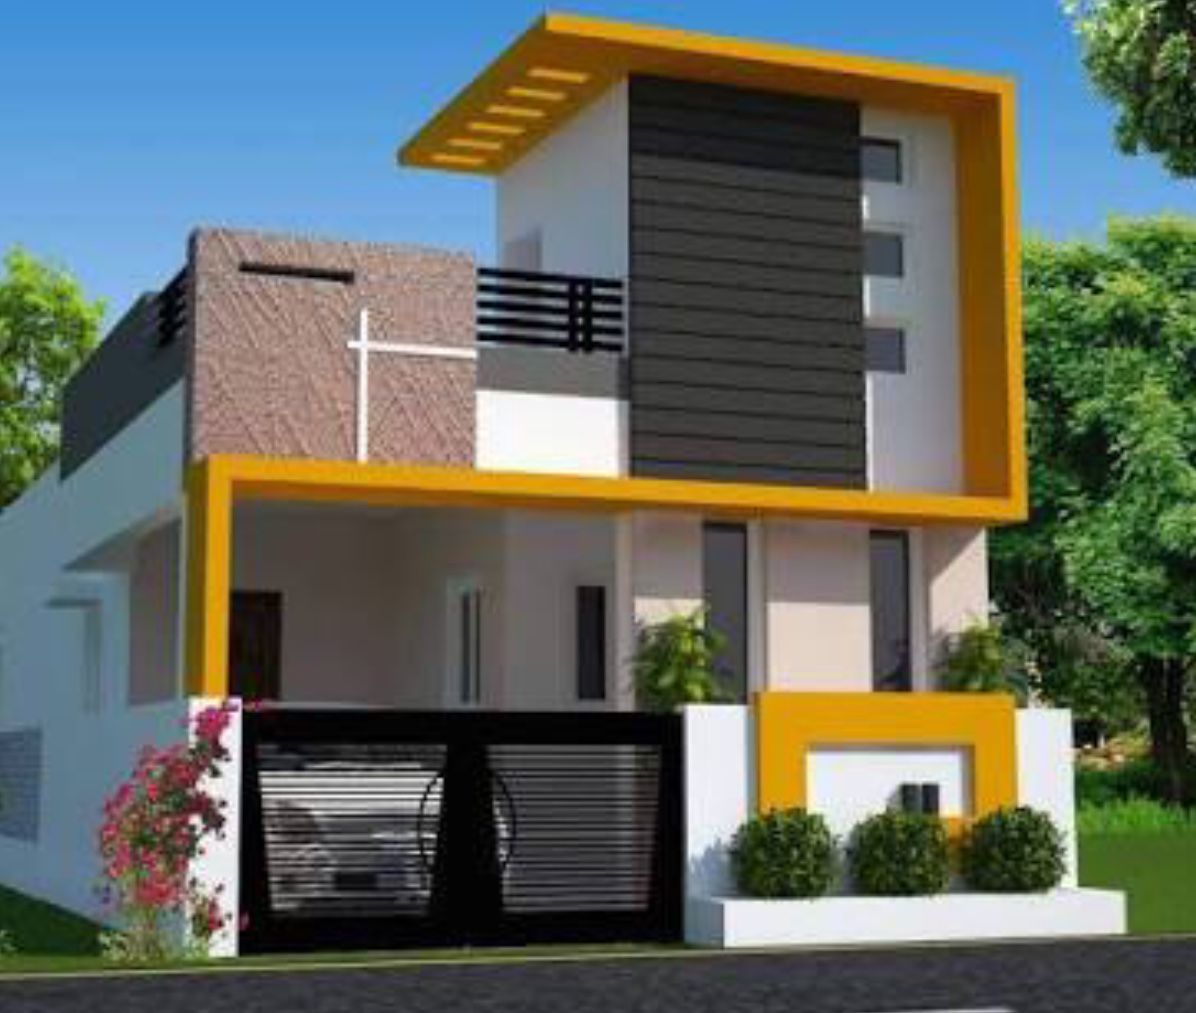 Independent House Single Floor House Design Small House Elevation Design Small House Front Design